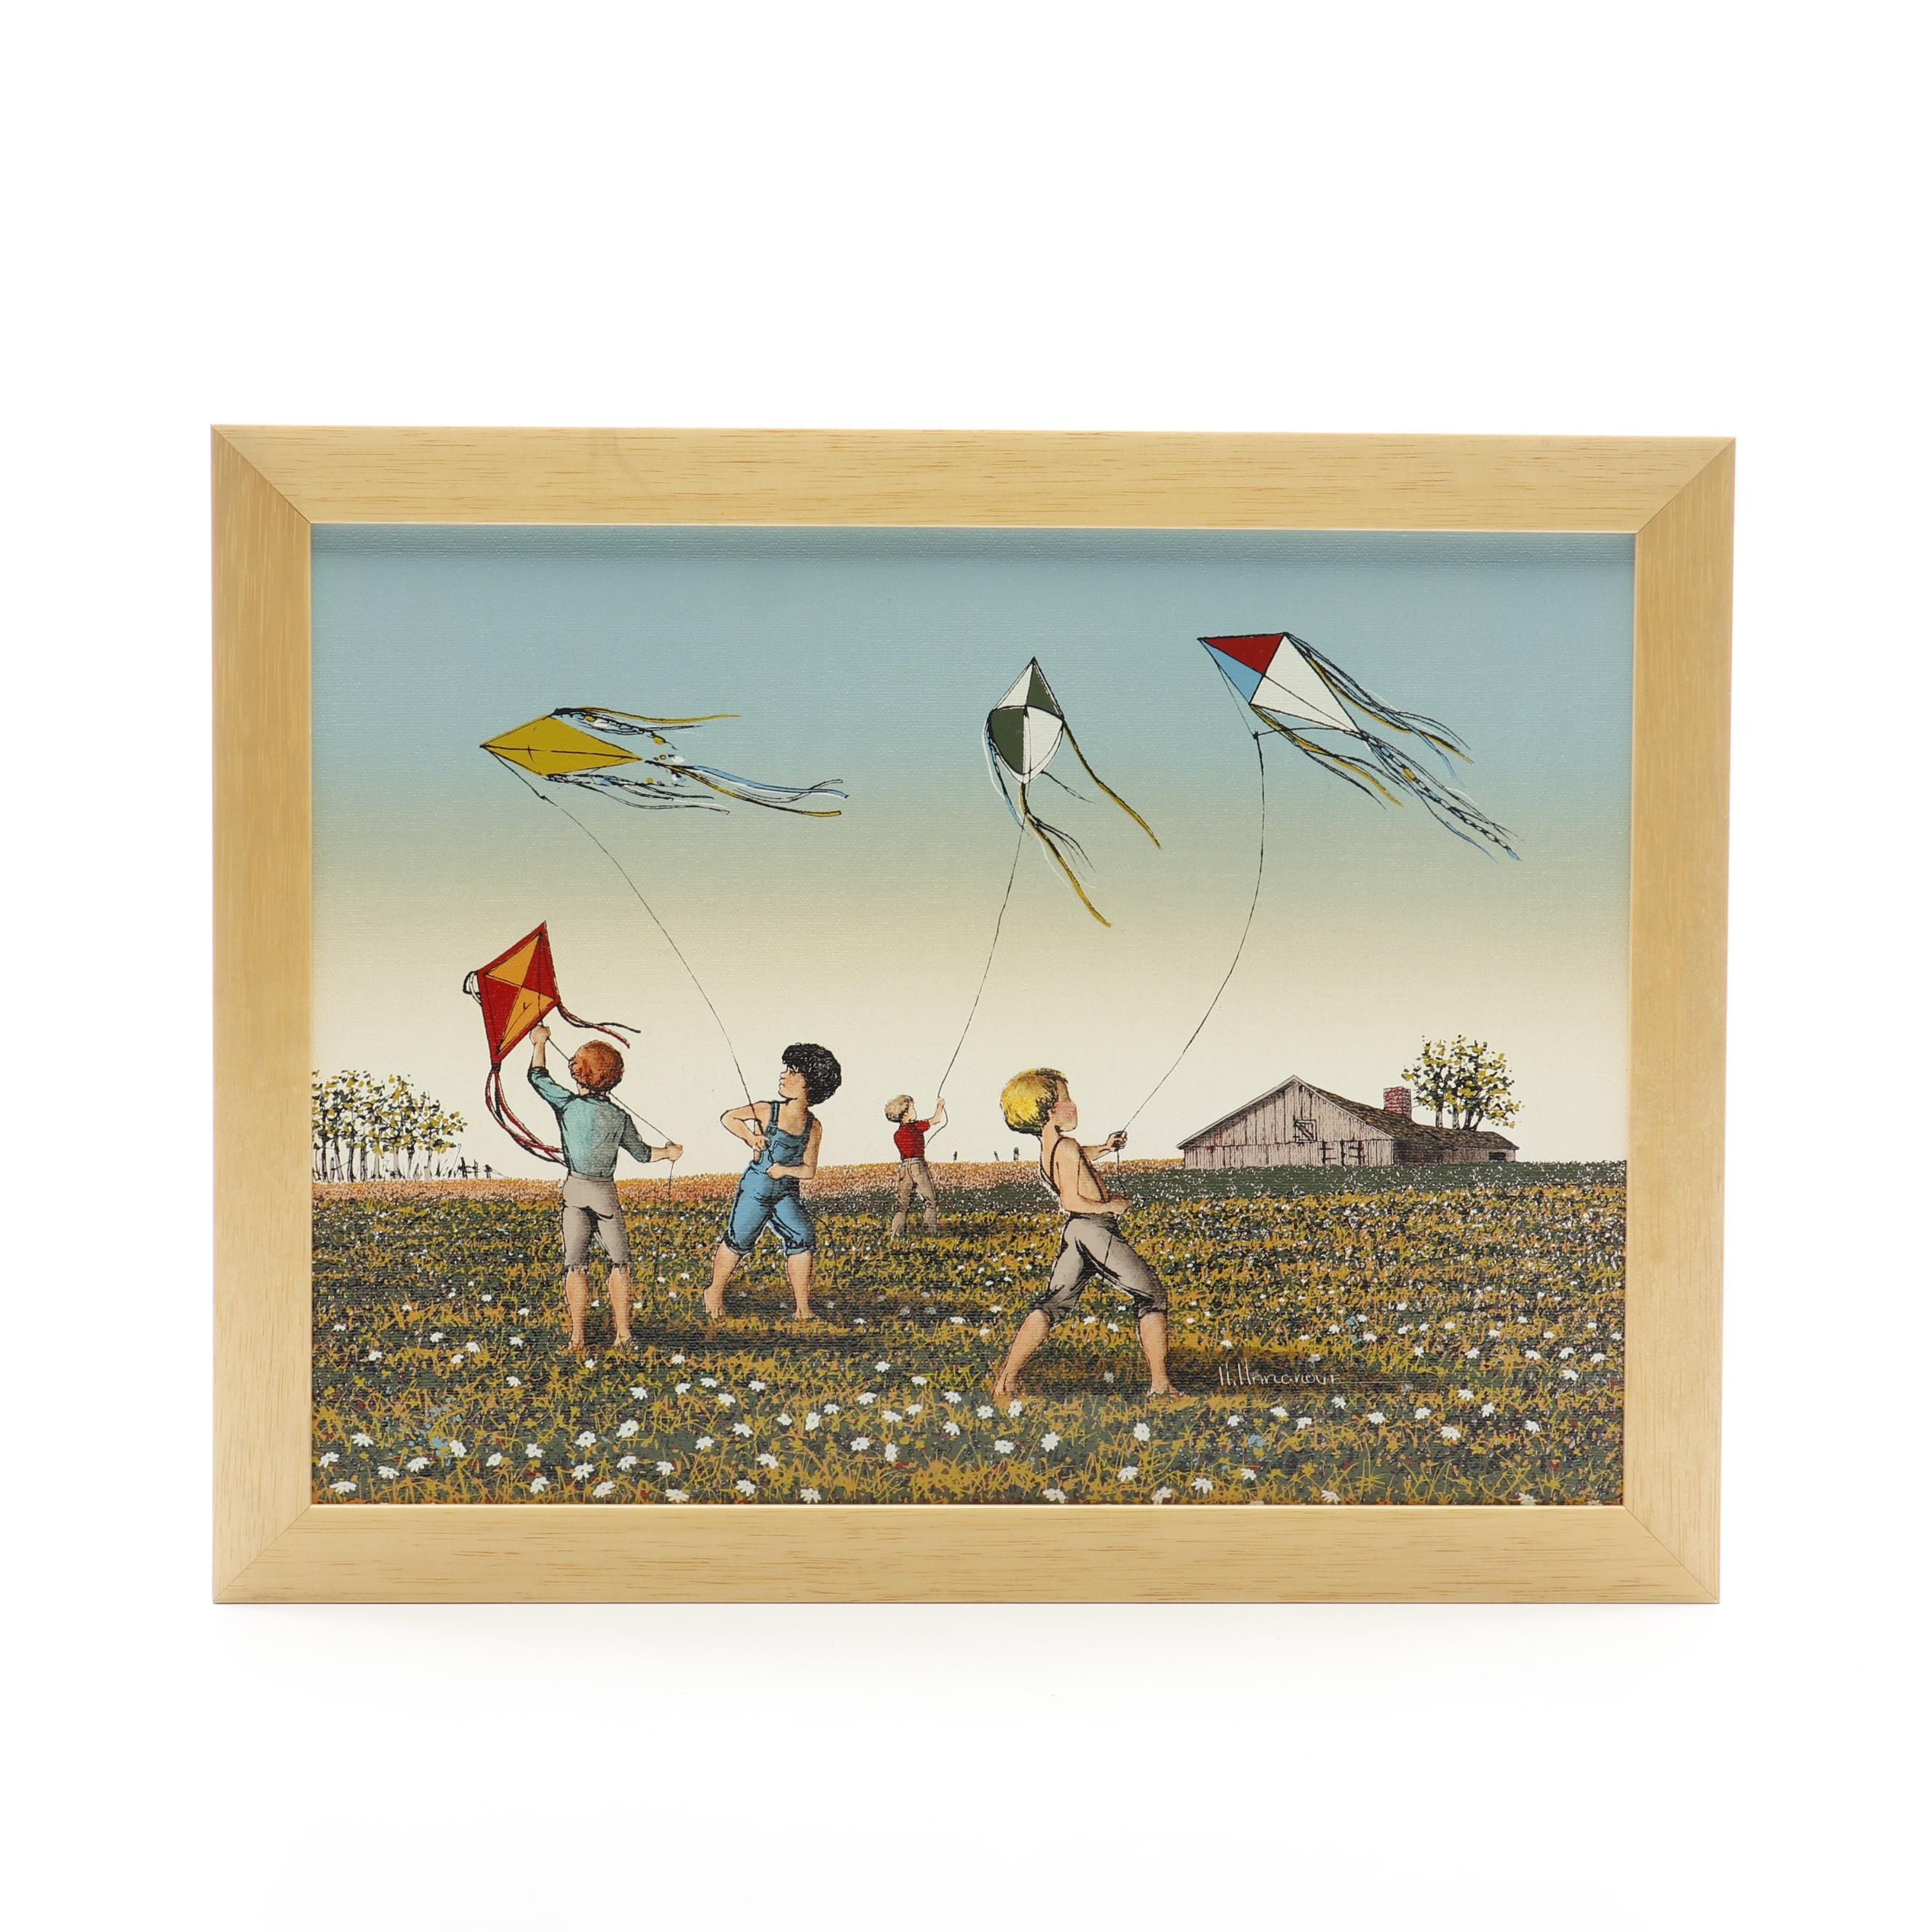 H. Hargrove Serigraph of Children with Kites